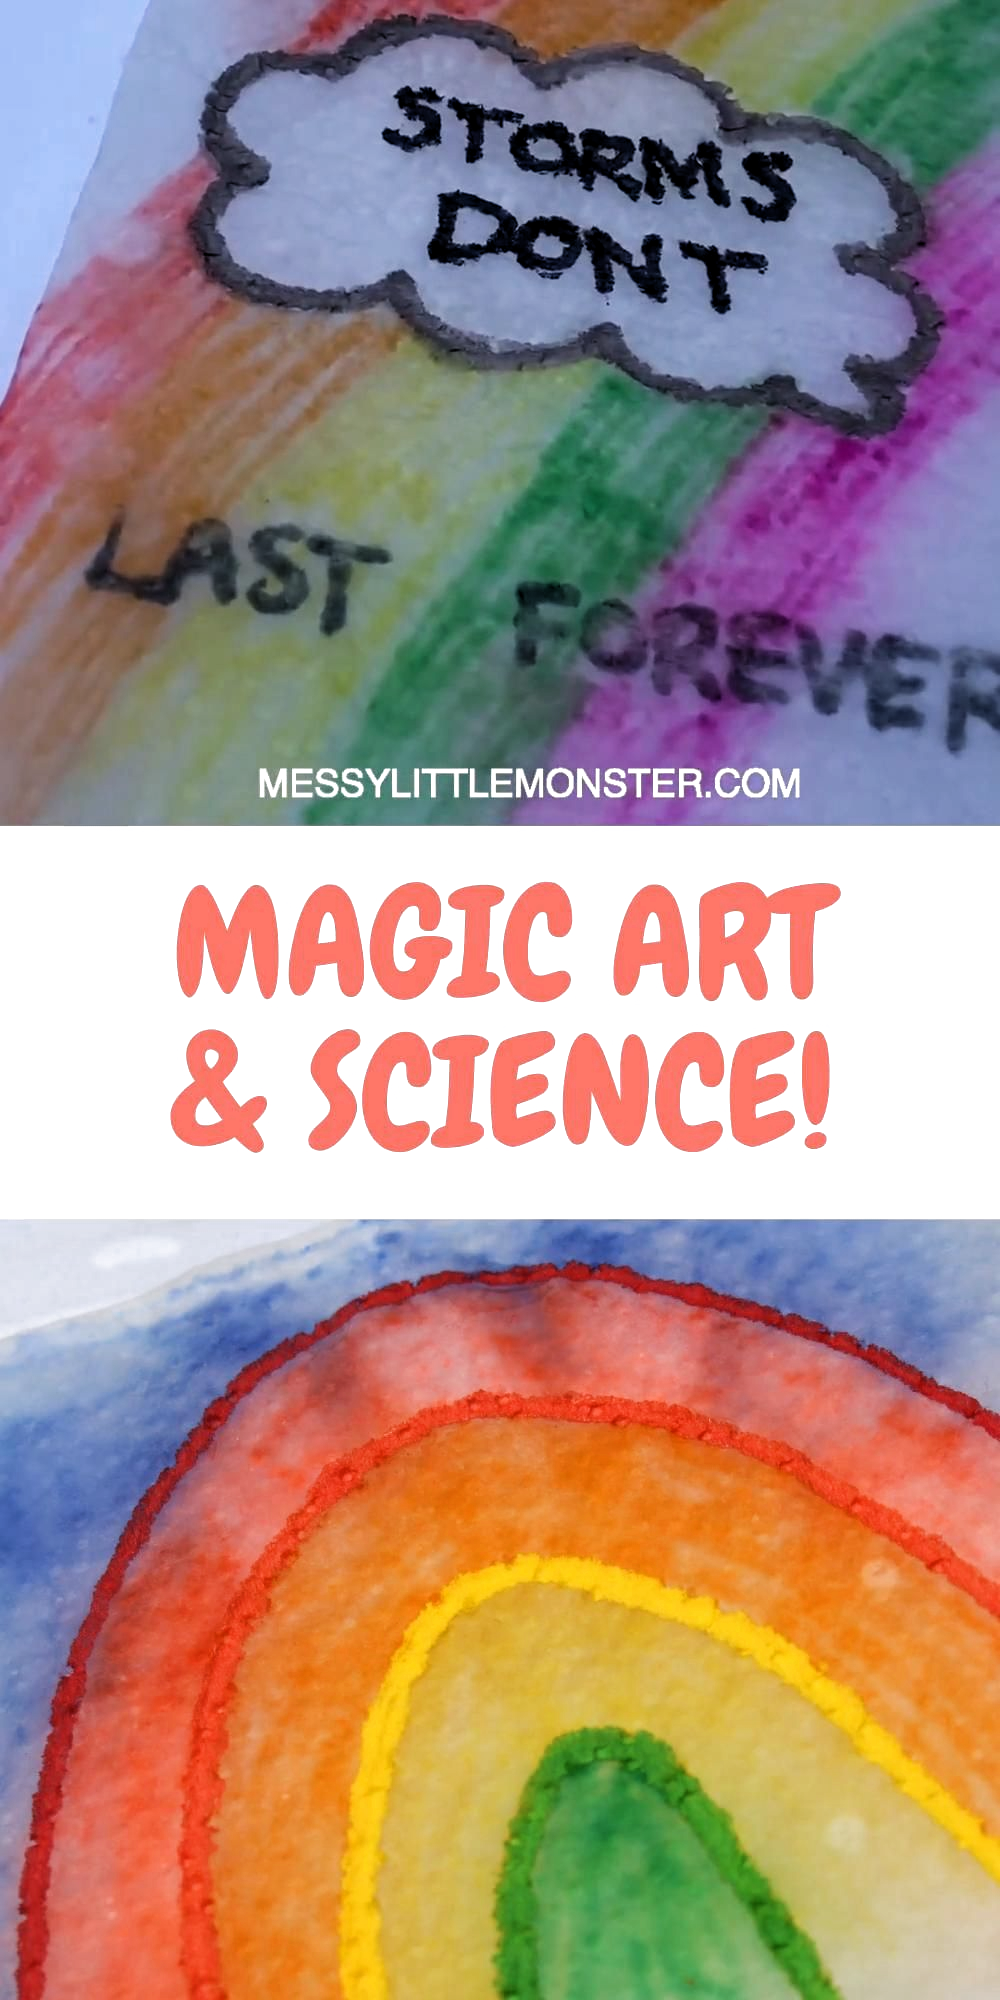 A fun science experiment and art activity for kids rolled into one. Magic paper towel art is a brilliant indoor activity for kids (or outdoor activity if you like) that kids of all ages will want to try again and again! #scienceexperiment #kidsart #kidsactivities #kidsactivity #kidscraft #scienceforkids #funscienceexperiments #papertowelart #indooractivities #indooractivitiesforkids